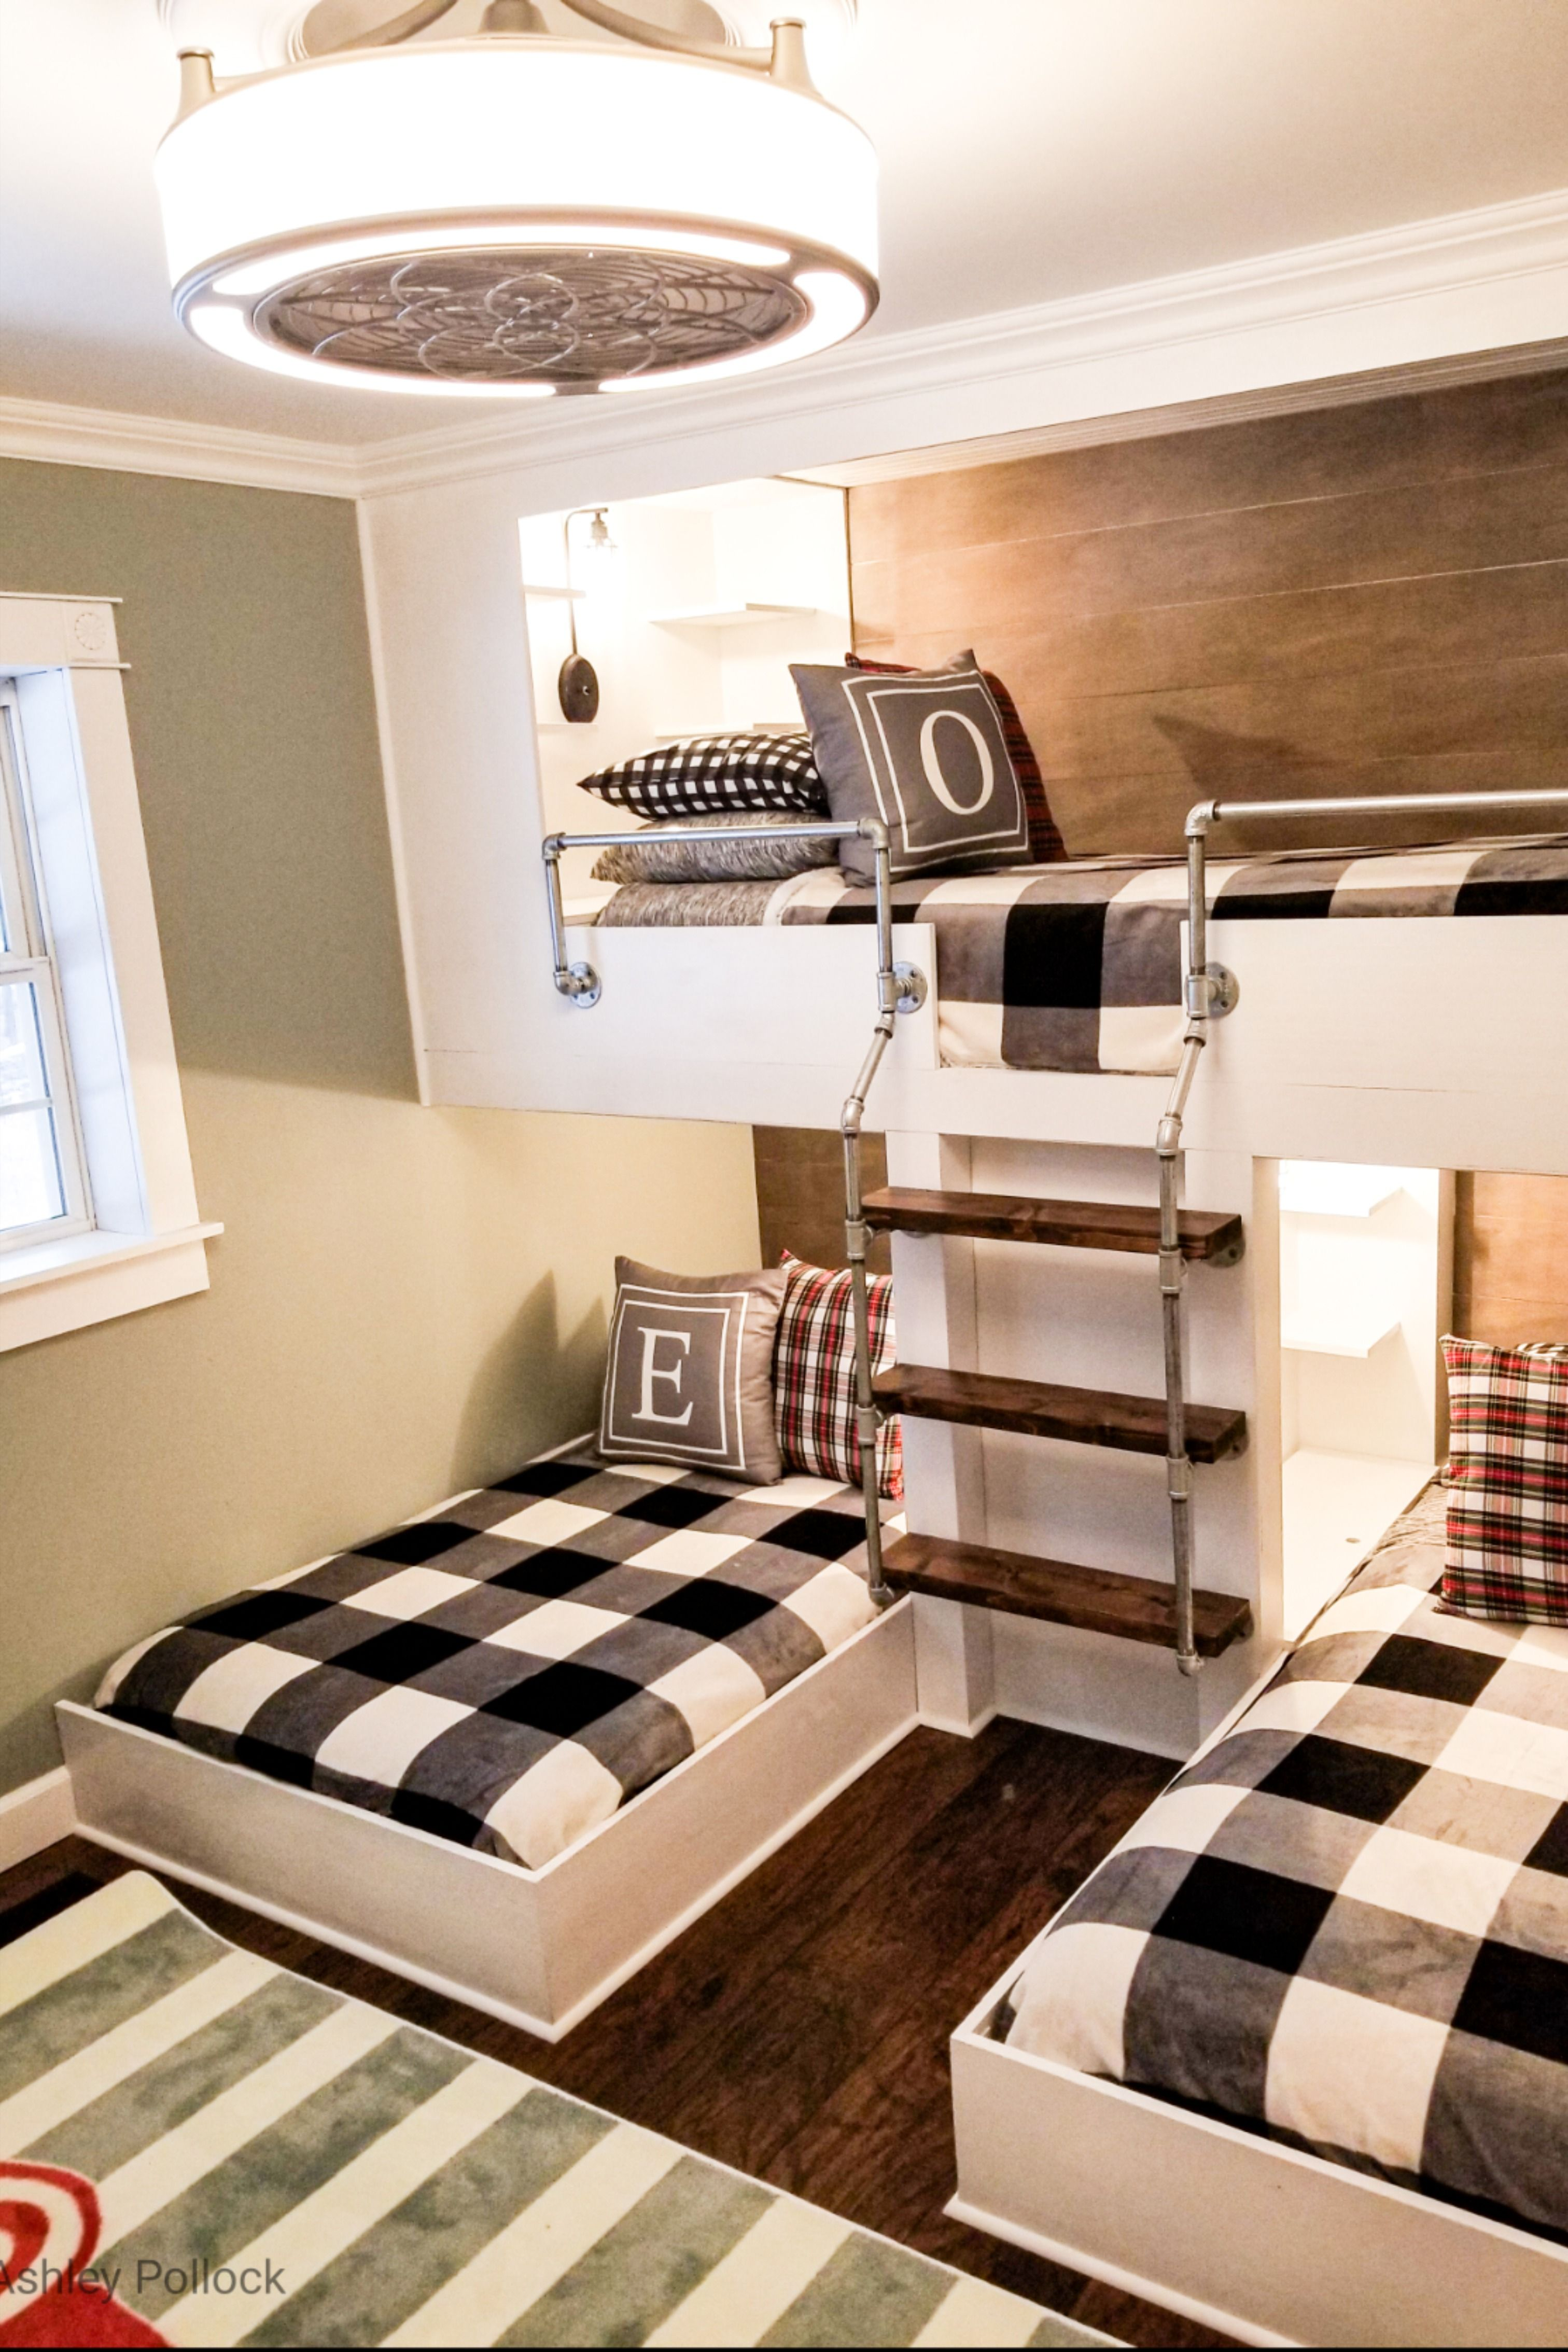 Space Saving Boys Room Makeover Bunk Beds Small Room Beds For Small Rooms Bunk Bed Rooms